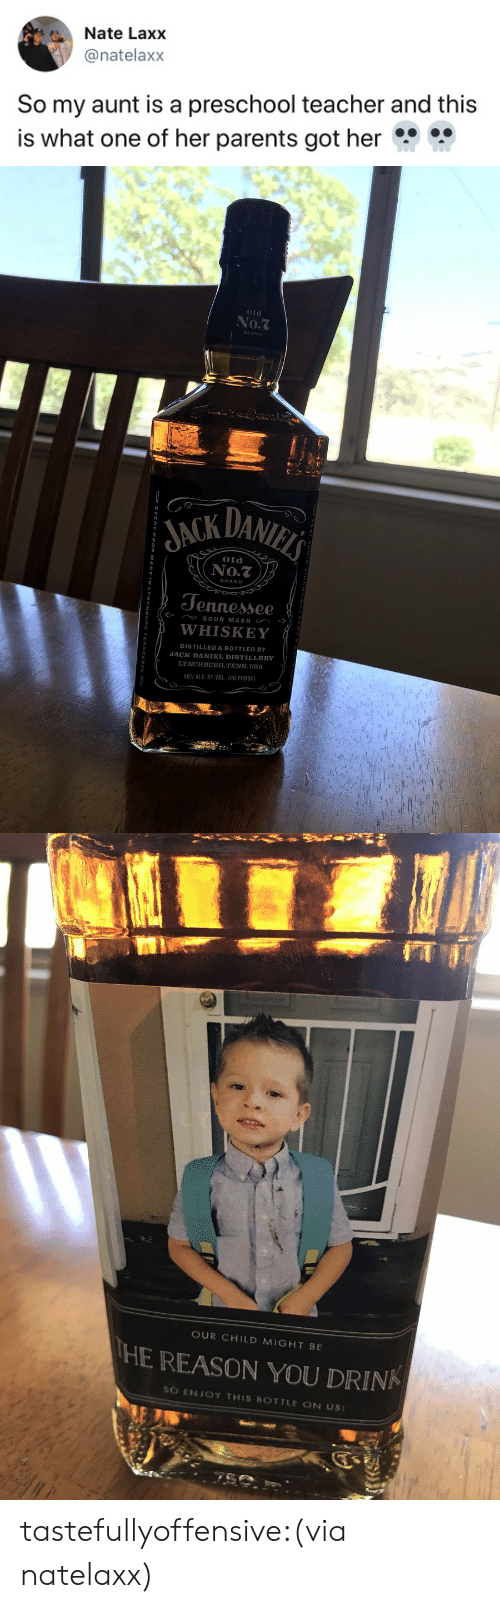 Parents, Teacher, and Tumblr: Nate Laxx  @natelaxx  So my aunt is a preschool teacher and this  is what one of her parents got her   01d  No.7  JACK DANI  Old  No.t  BRAND  Jennesse  WHISKEY  DISTILLED&BOTTLED BY  JACK DANIEL DISTILLERY  LYNCHBURG, TENN. USA  40% ALC BY VOL. (80 PROOF)   OUR CHILD MIGHT BE  HE REASON YOU DRINK  SO ENJOY THIS BOTTLE ON US tastefullyoffensive:(via natelaxx)